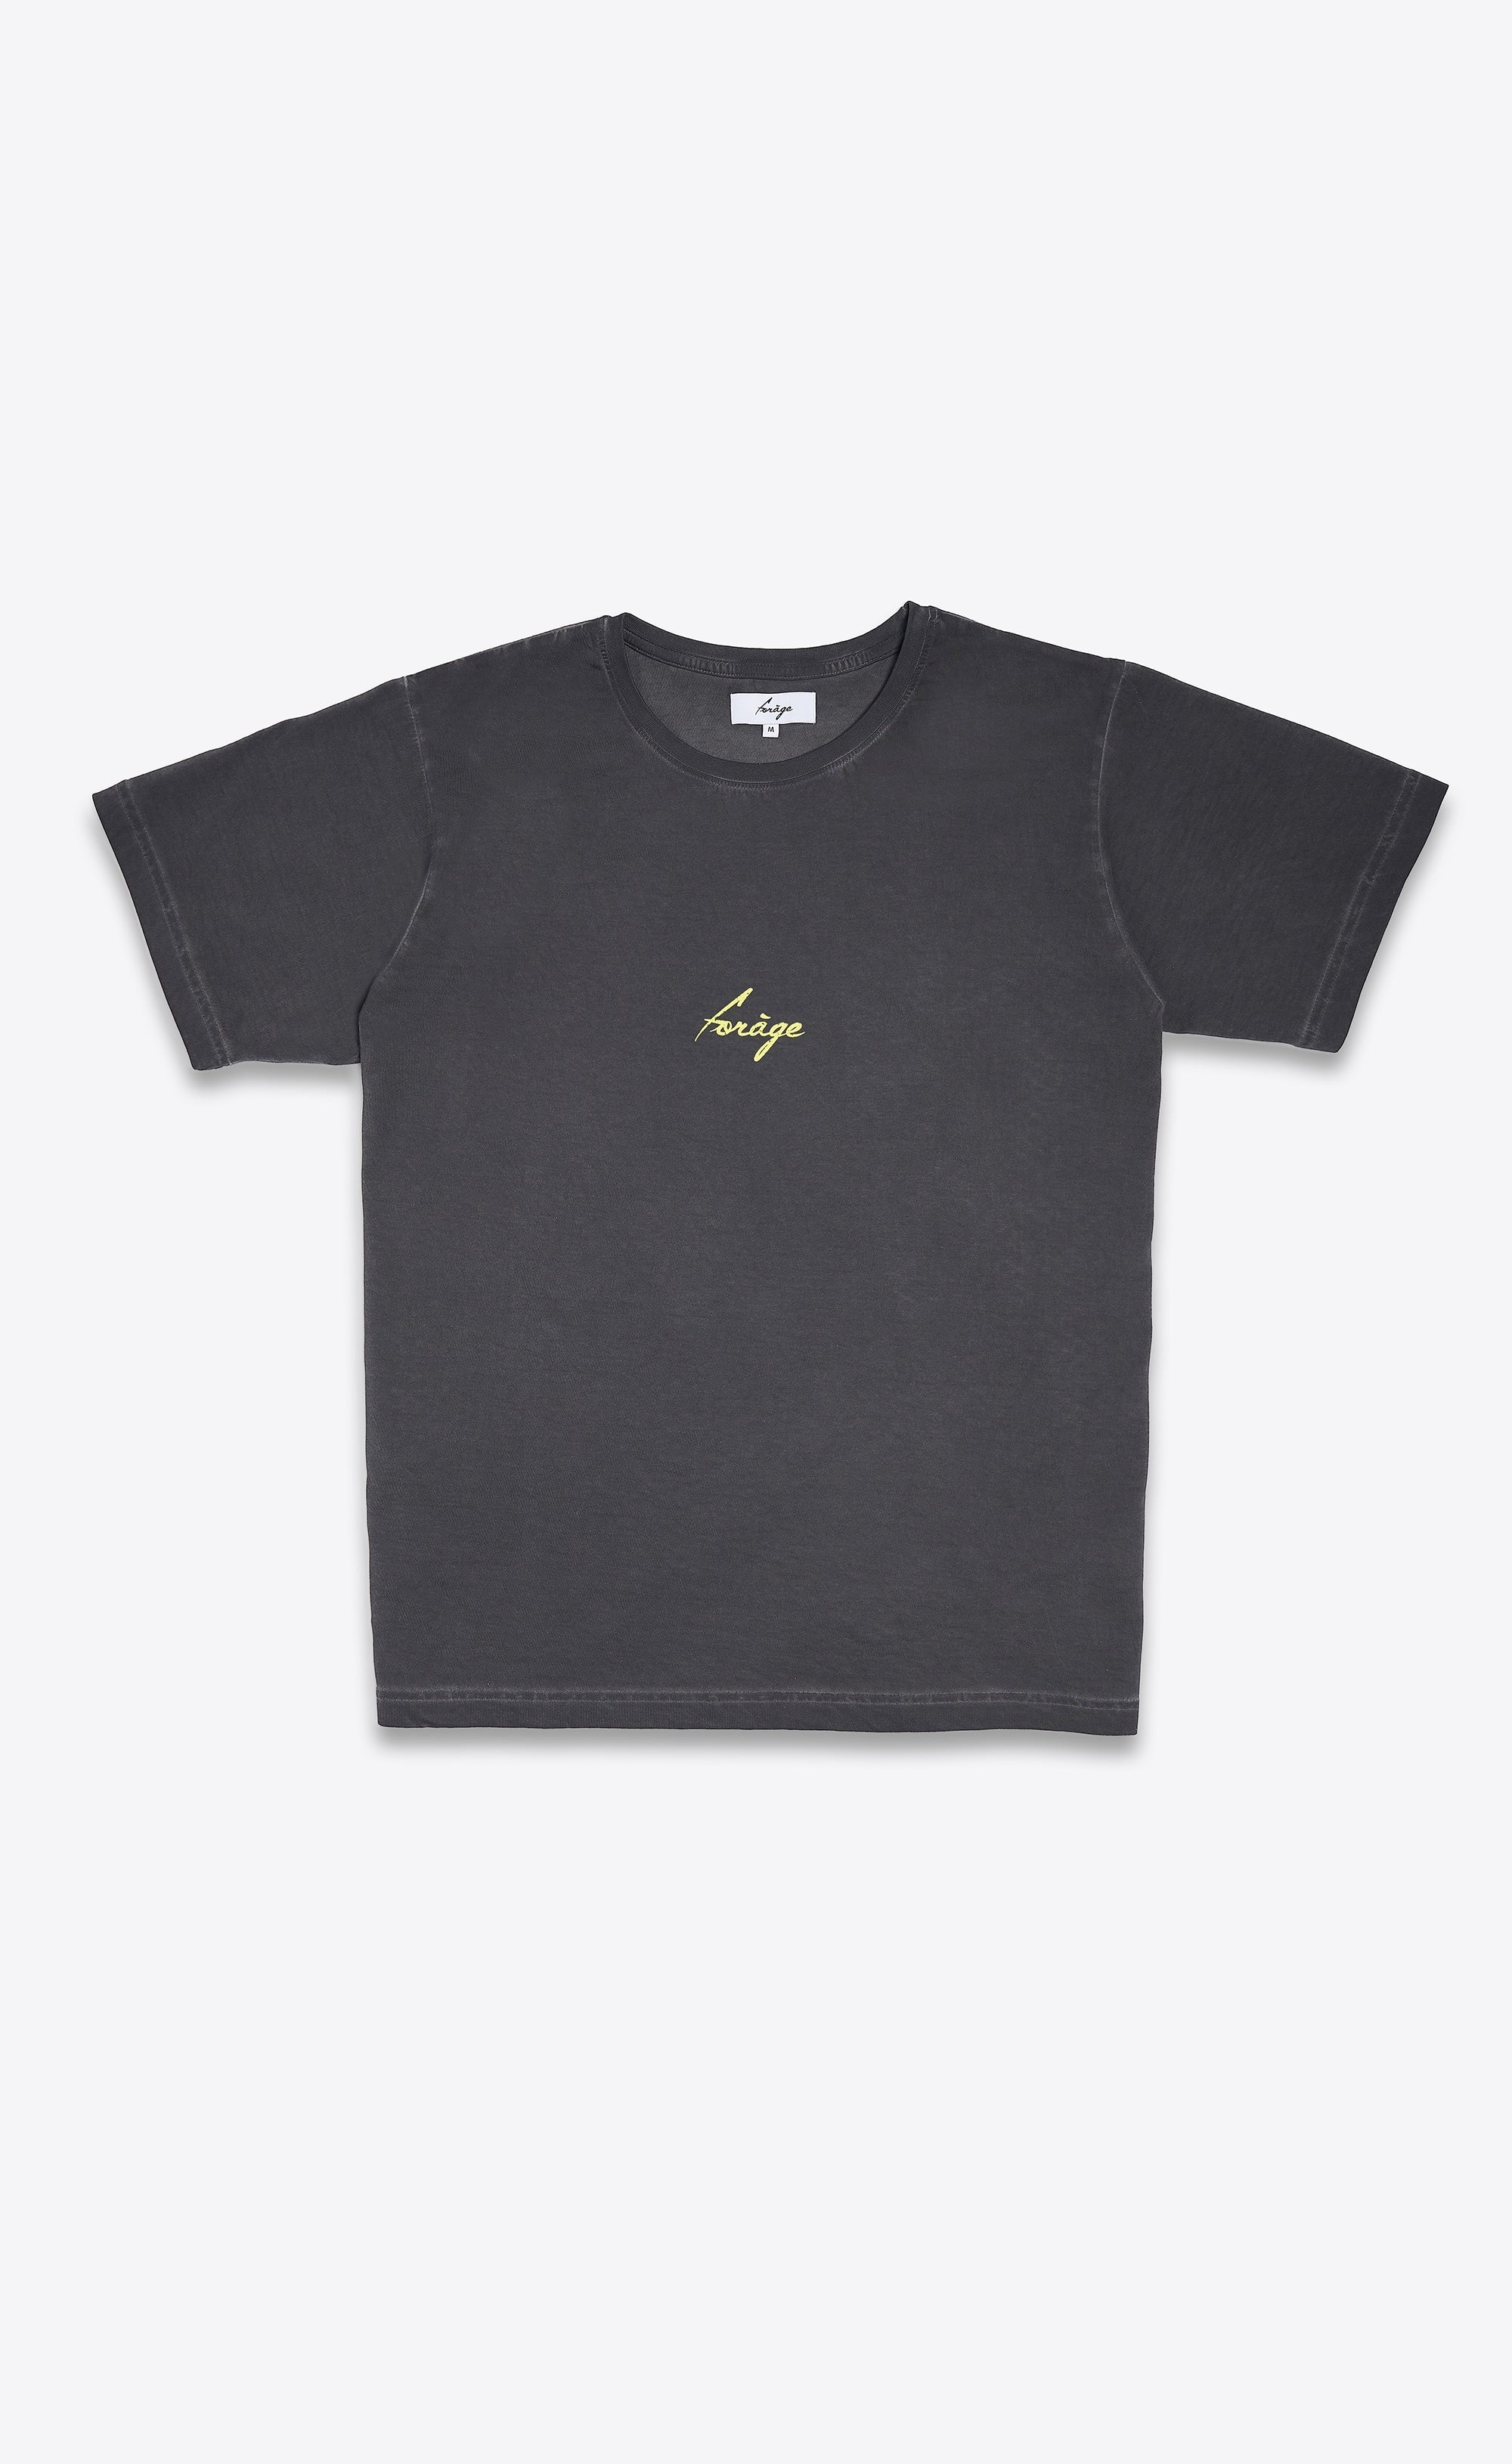 FORAGE LOGO SHIRT - MINIMAL YELLOW - Forage-Clothing